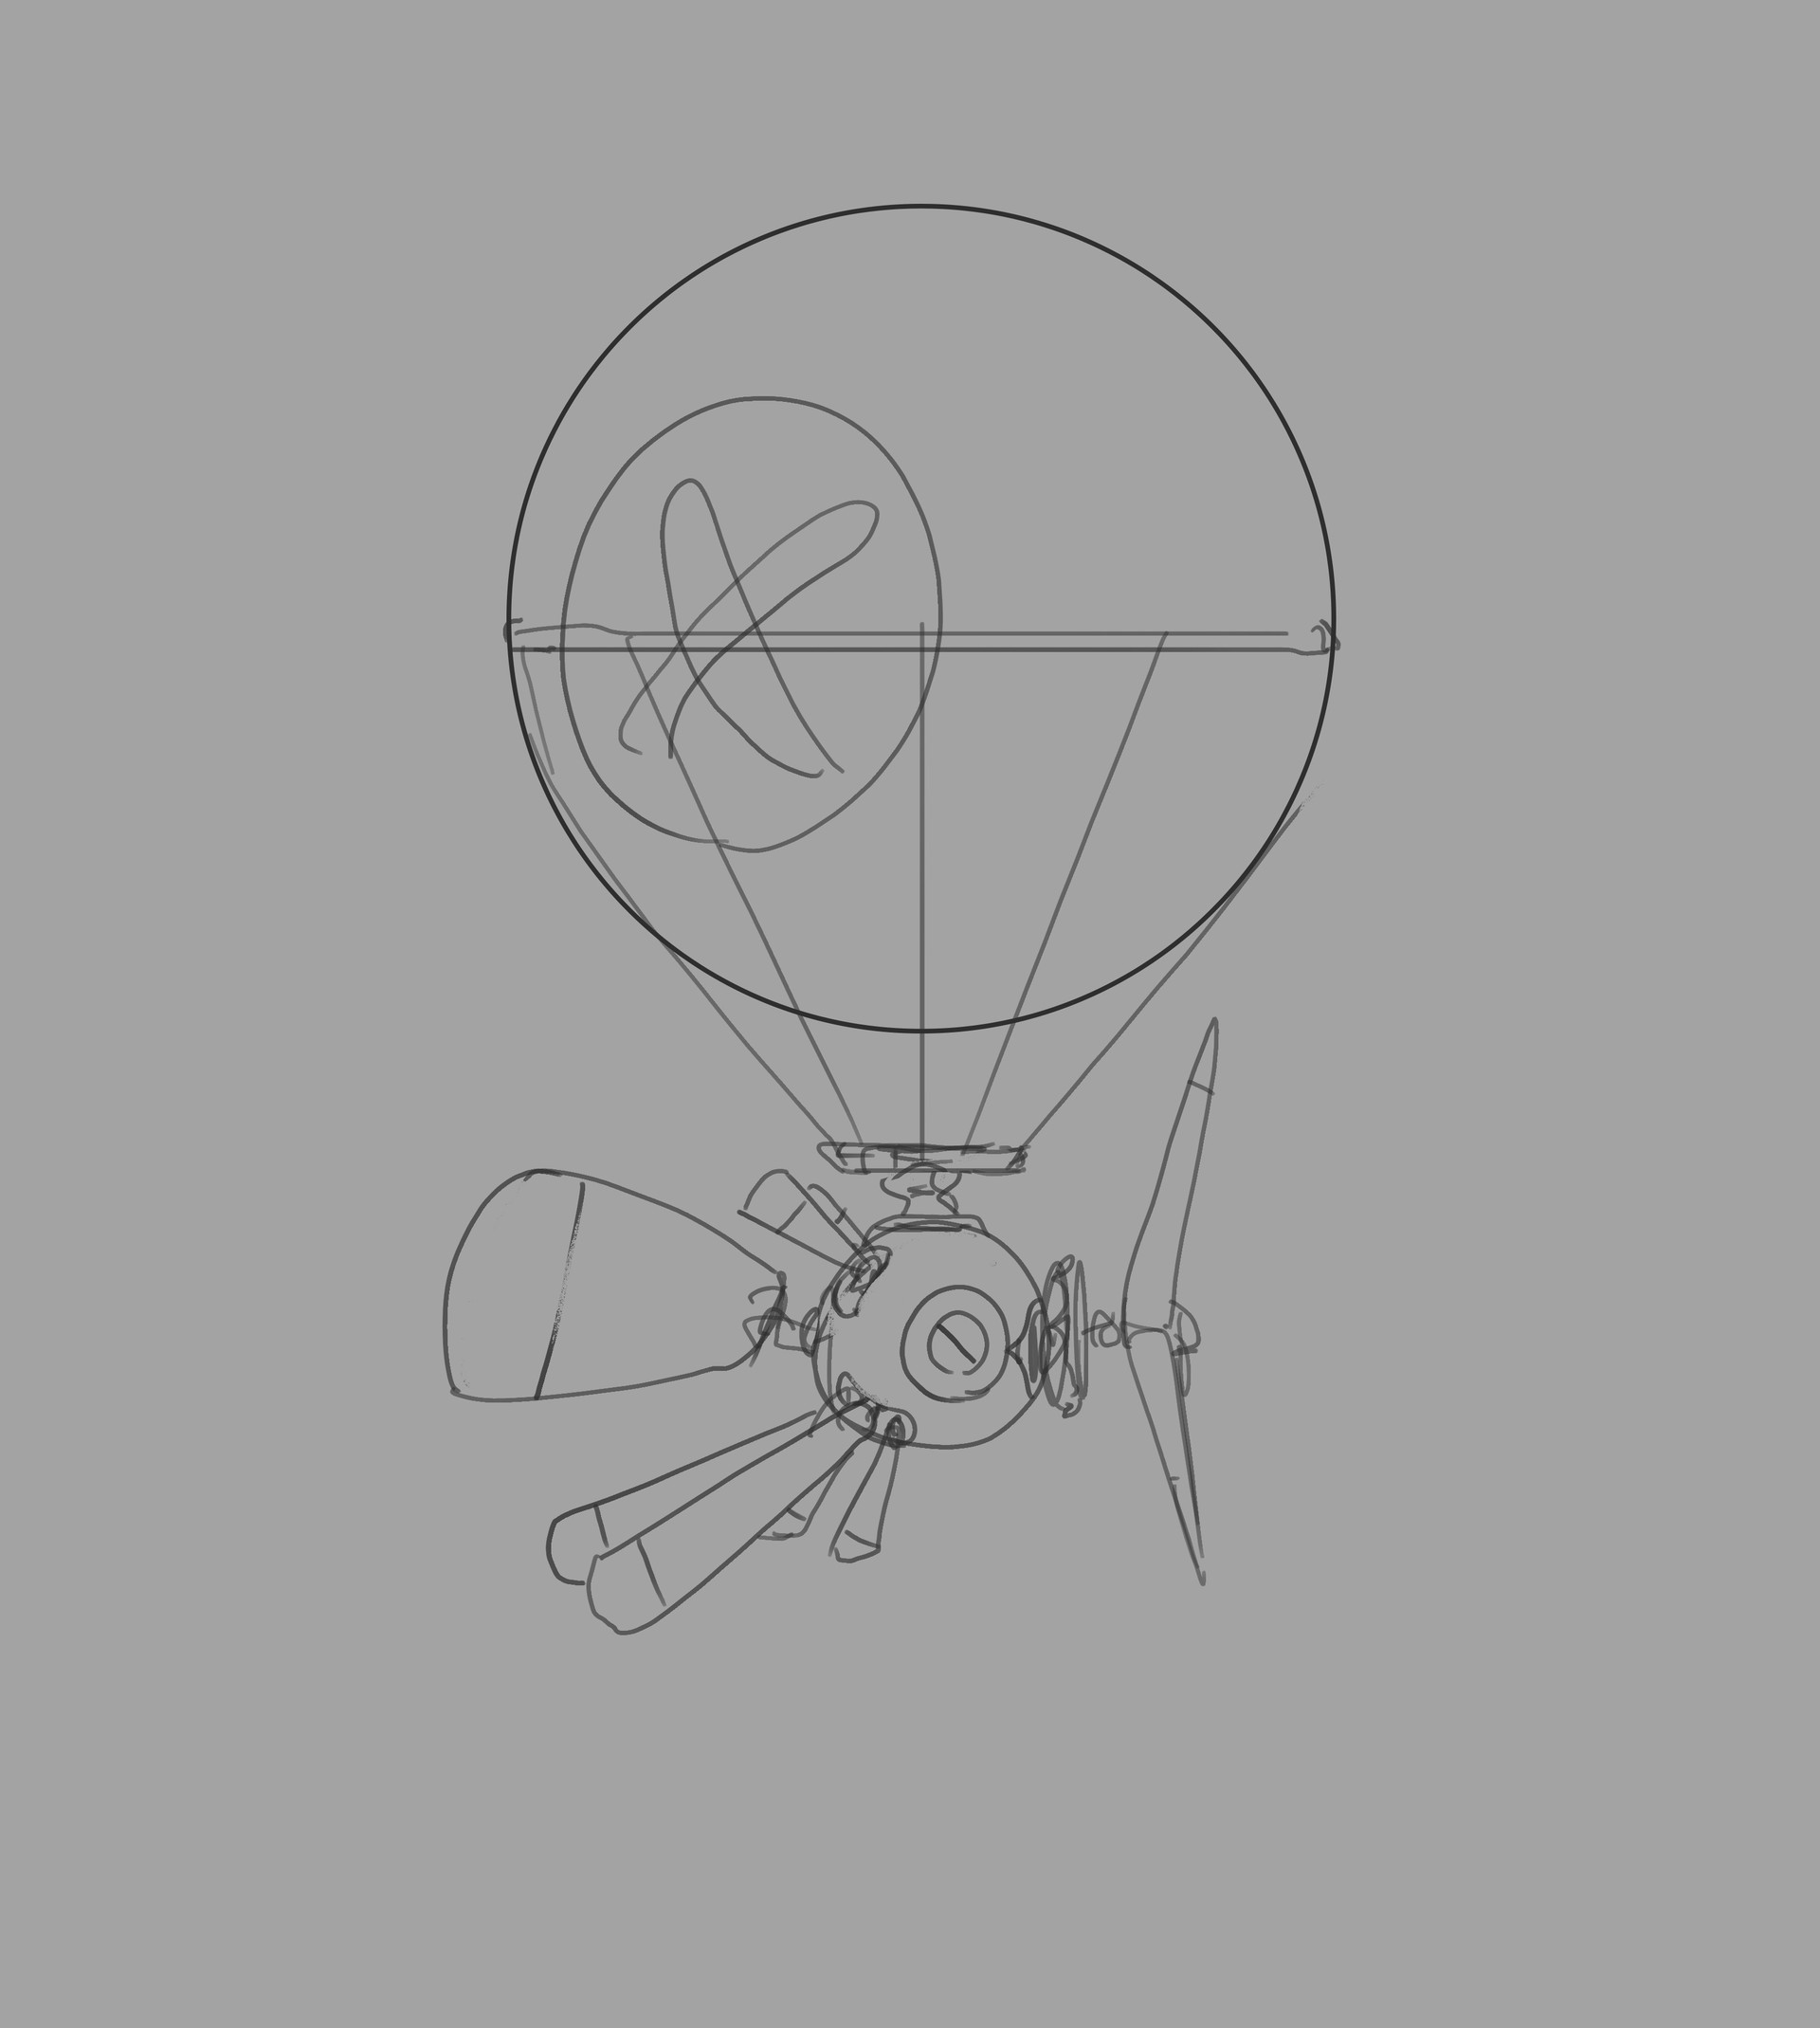 Samuel herb balloon drone sketch